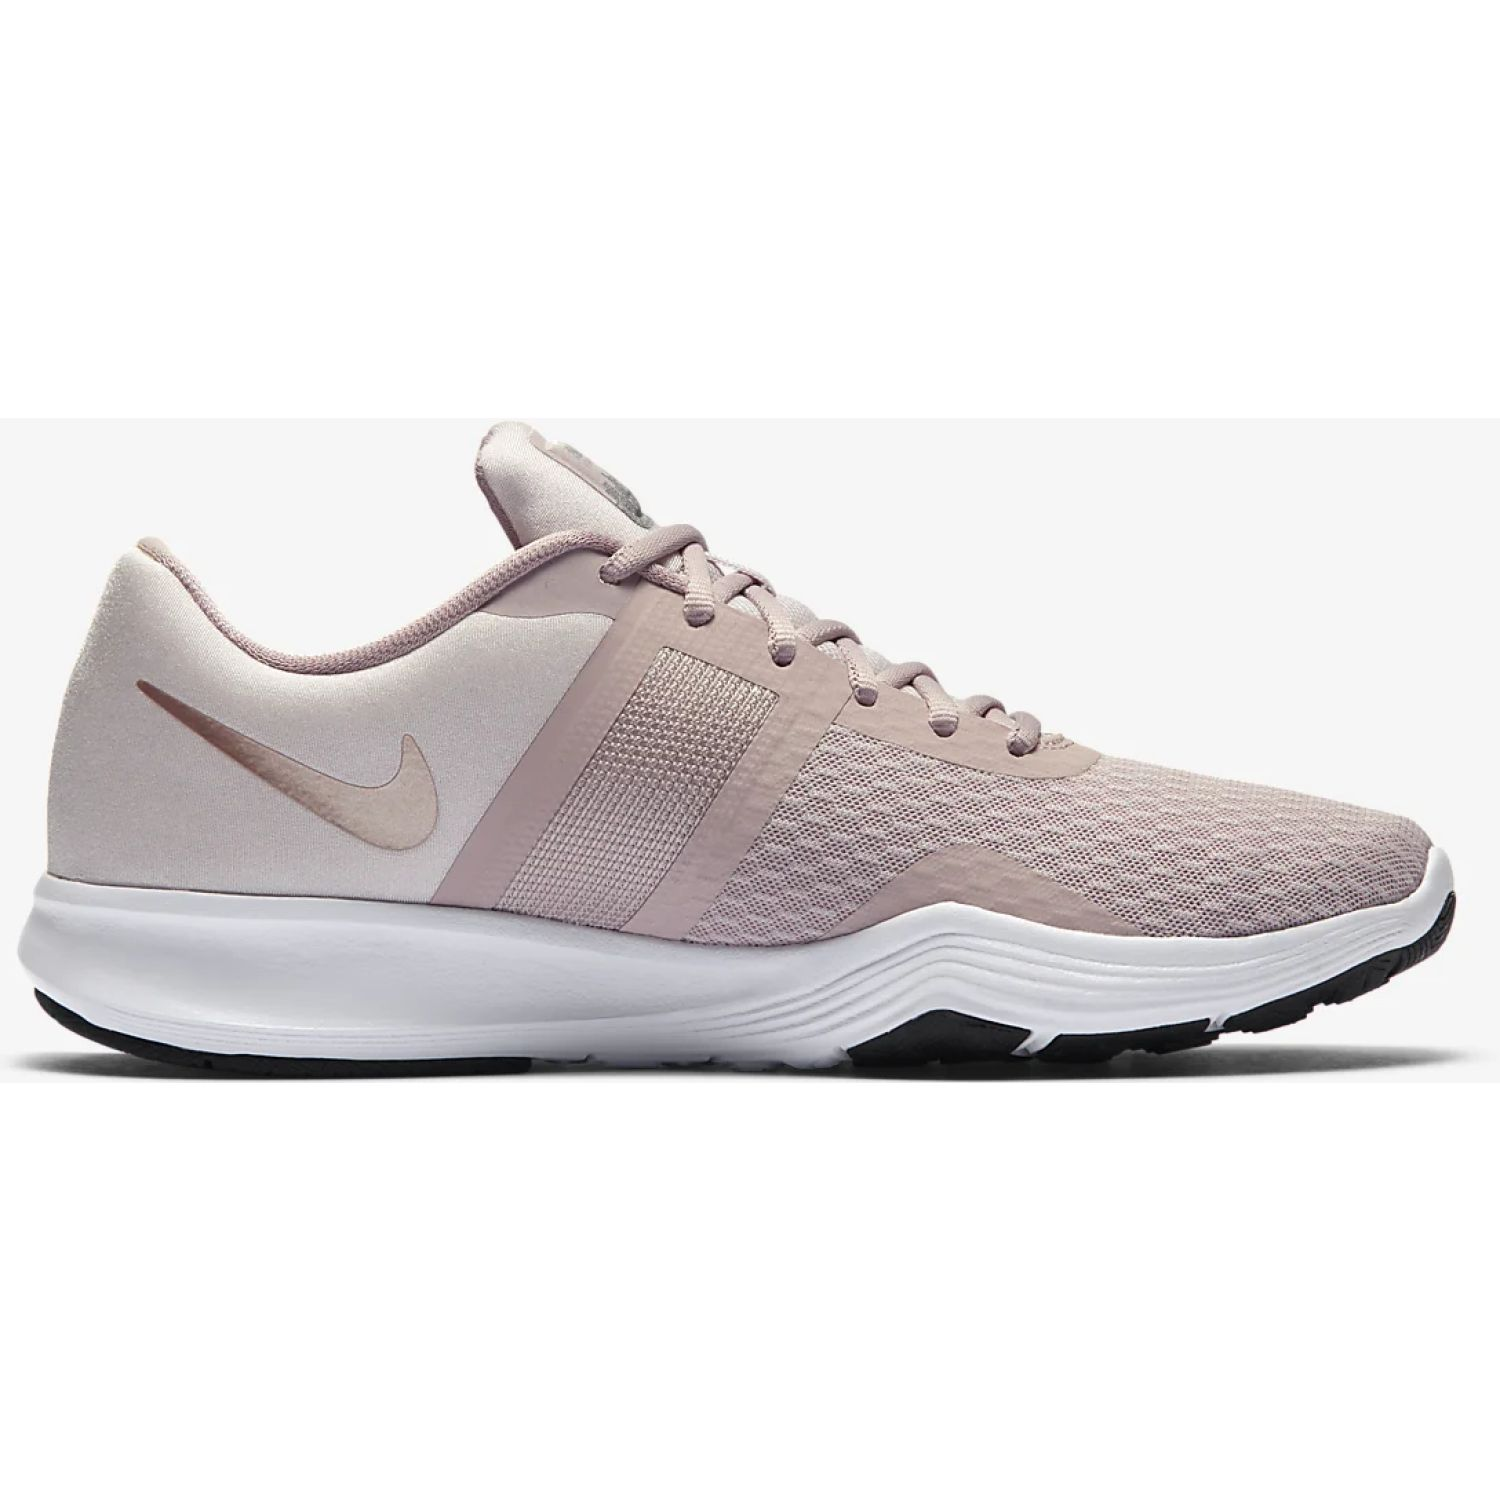 Nike WMNS NIKE CITY TRAINER 2 Beige Mujeres